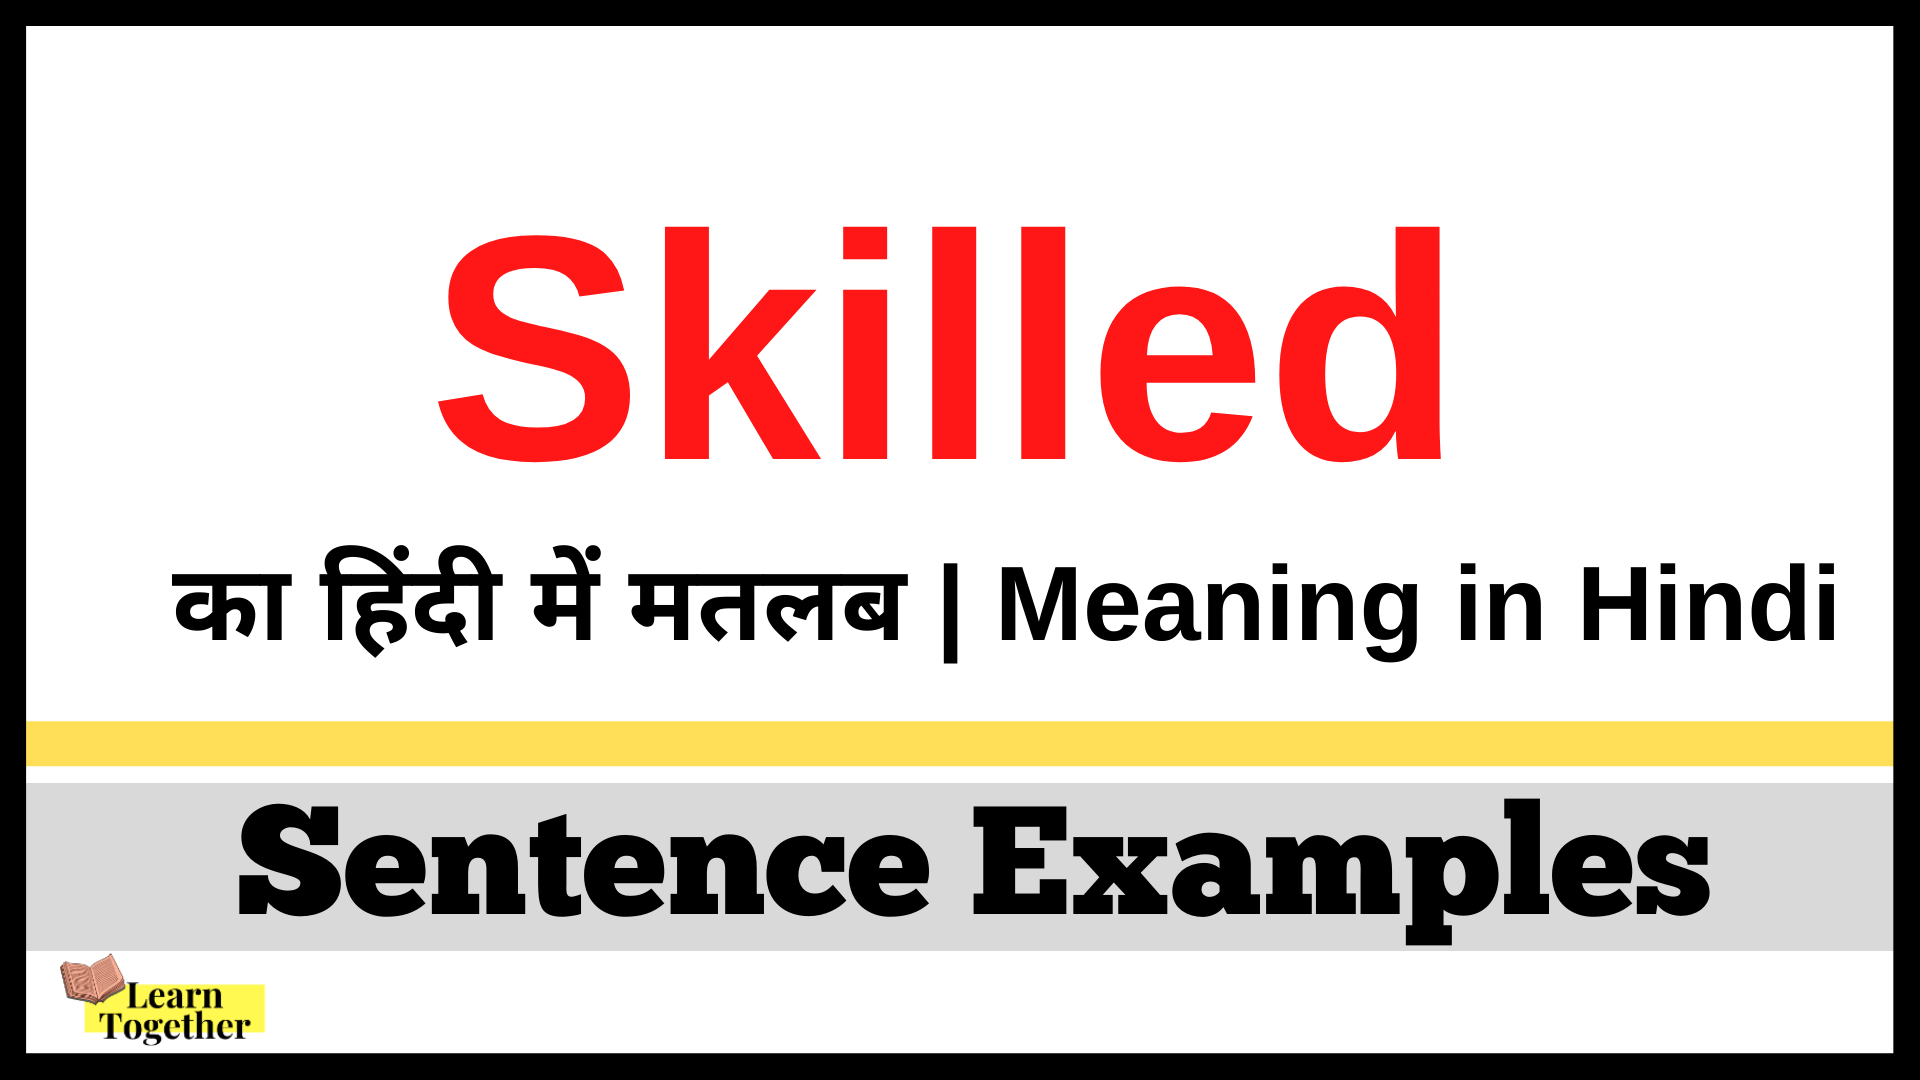 Skilled Meaning in Hindi.png